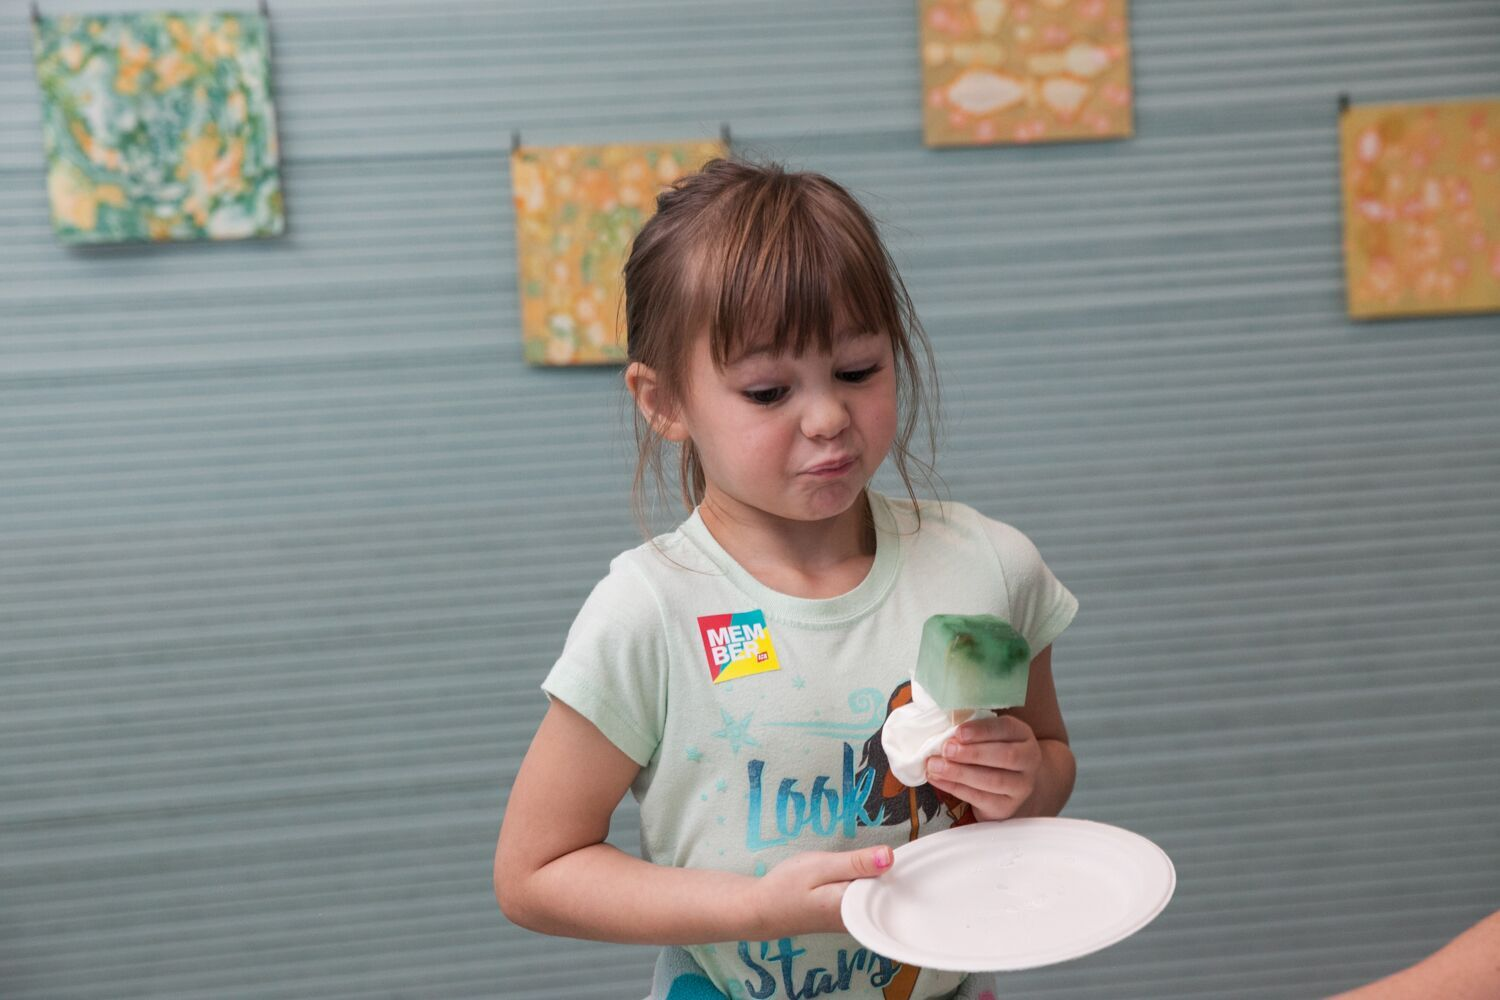 A museum visitor tastes the phytoplankton popsicle at the ICA. (Courtesy Galya Feierman/ICA)